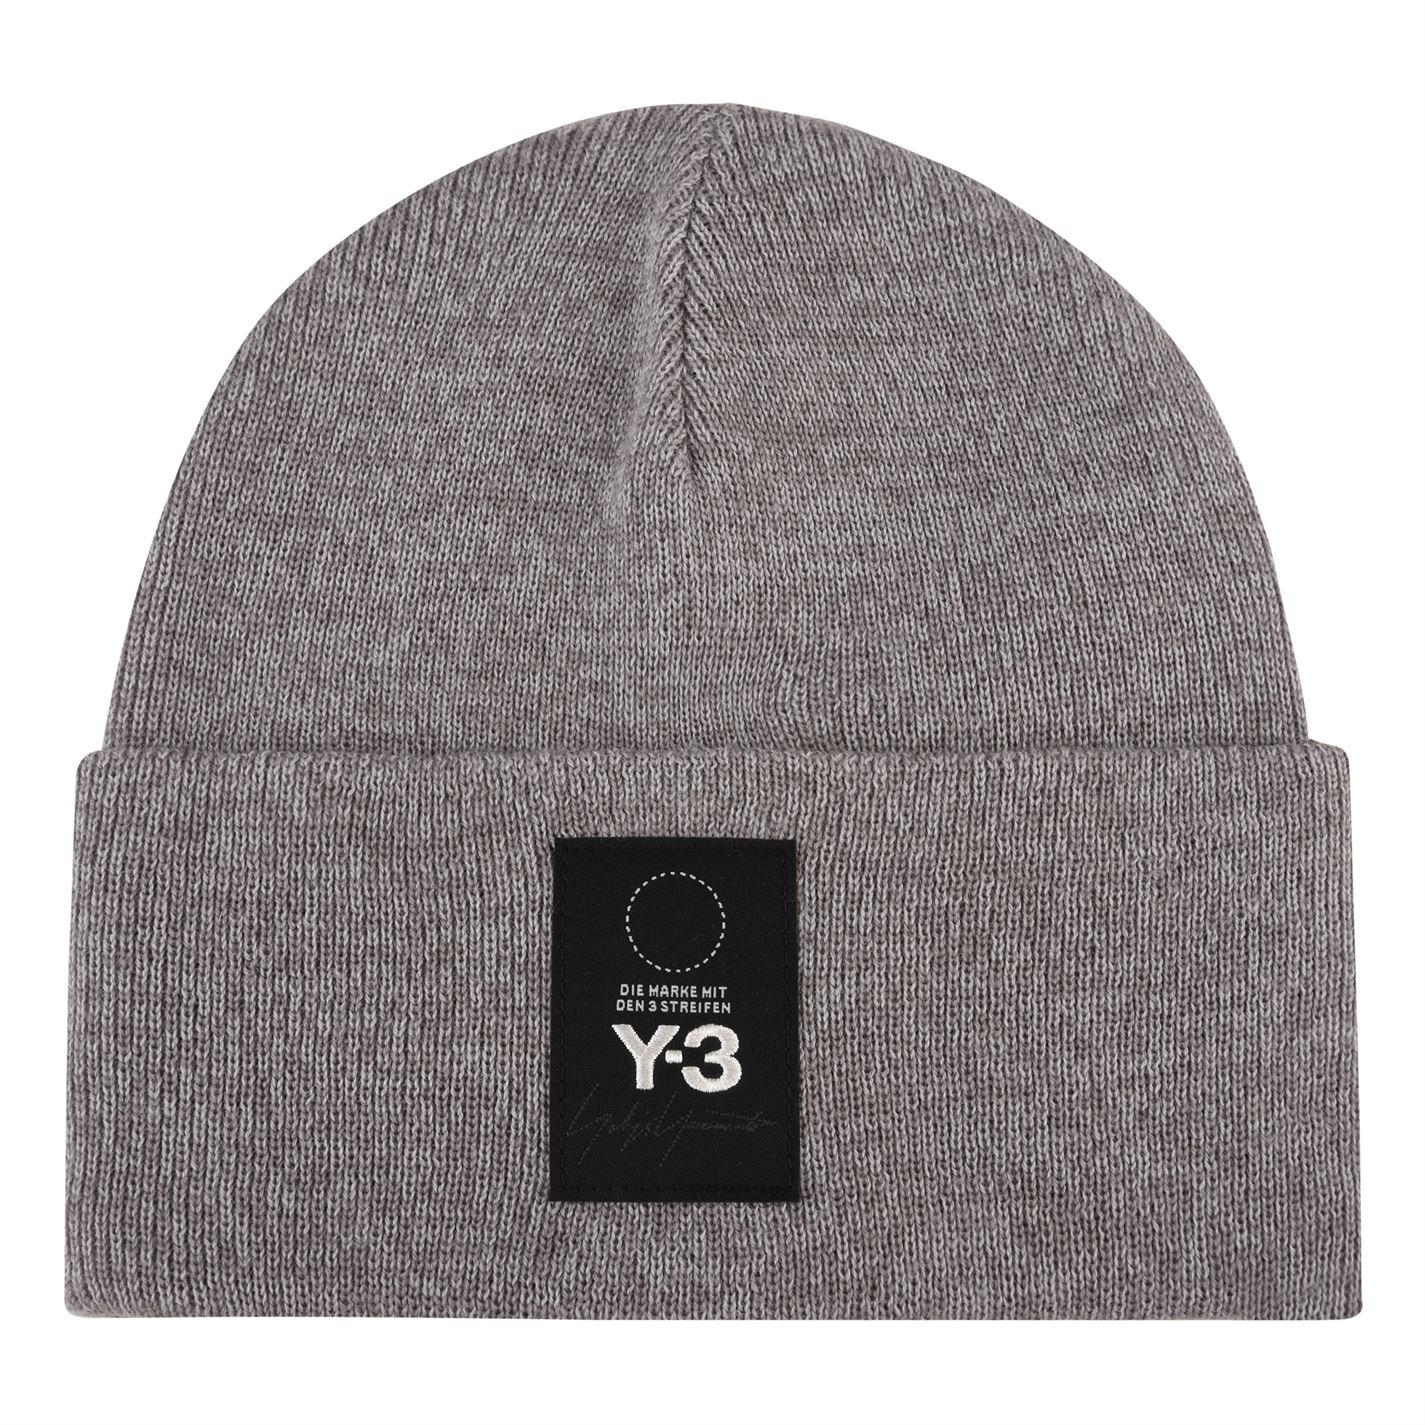 0084f6e5775a1 Y-3 Logo Patch Beanie Hat in Gray for Men - Lyst